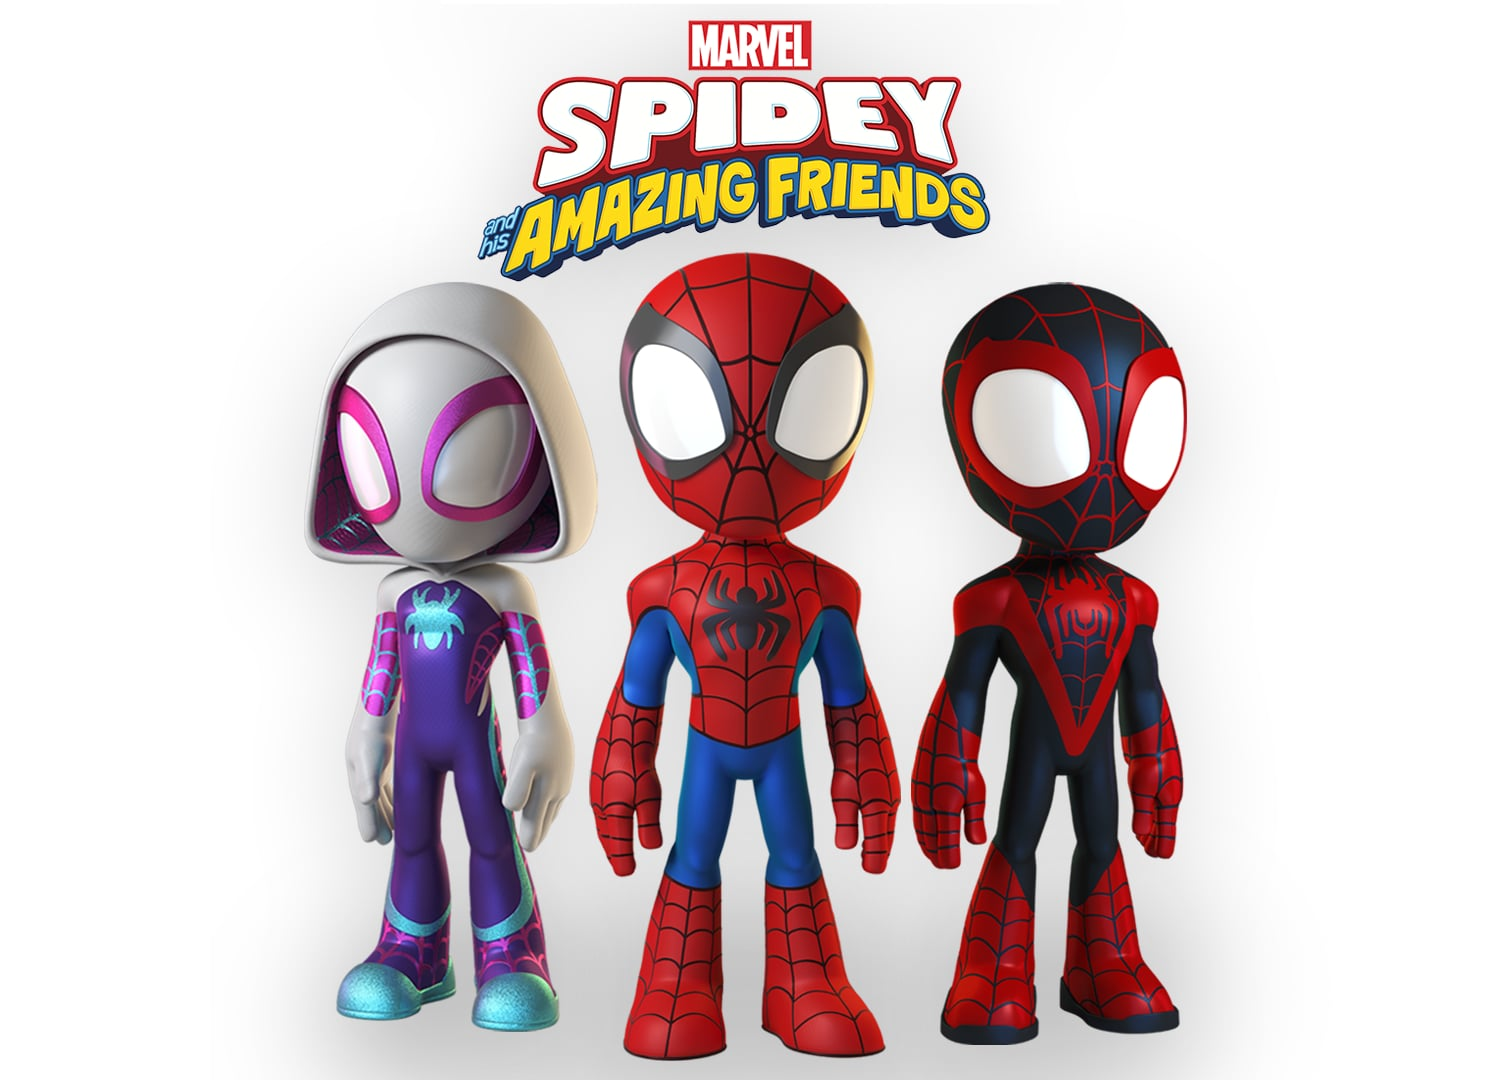 MARVEL'S SPIDEY AND HIS AMAZING FRIENDS - Characters. (Disney Junior)GHOST-SPIDER, SPIDER-MAN AND MILES MORALES